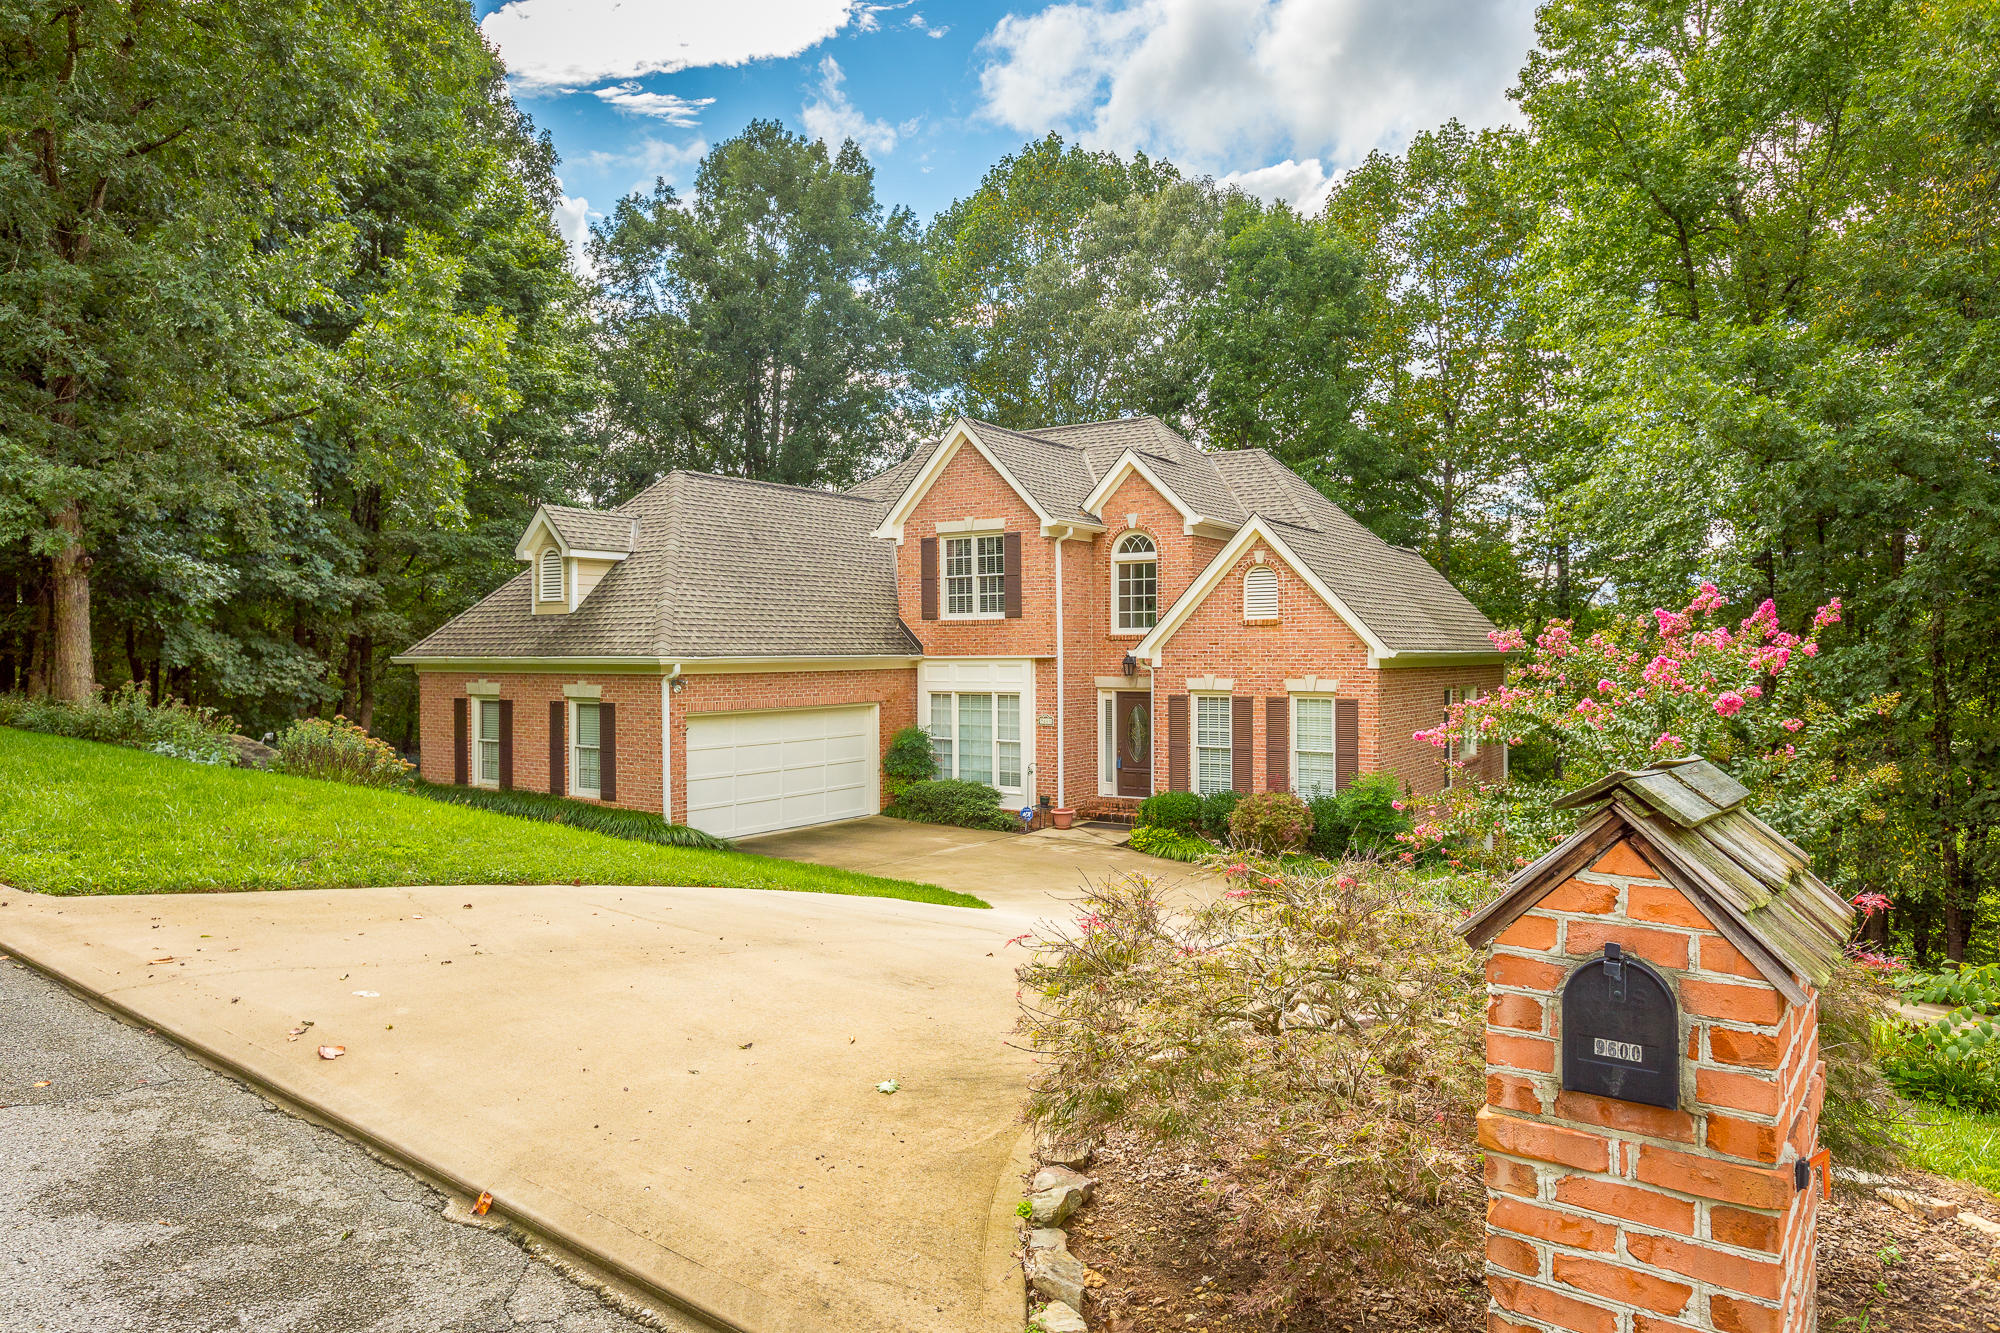 9600 Thornberry Drive Chattanooga #homeforsaleinchattanooga, #ChattanoogaHomeForSale, #ThePaulaMcDanielGroup, #Chattanoogarealestateforsale, #Chattanoogarealestateforsale, #allbrickhomeforsale#, ThePaulaMcDanielGroup, #homeforsalewith - The Paula McDaniel Group With Real Estate Partners Chattanooga LLC Luxury homes for sale in Chattanooga and N. GA by The Paula McDaniel Group. Chattanooga homes and land for sale by The Paula McDaniel Group with Real Estate Partners Chattanooga LLC